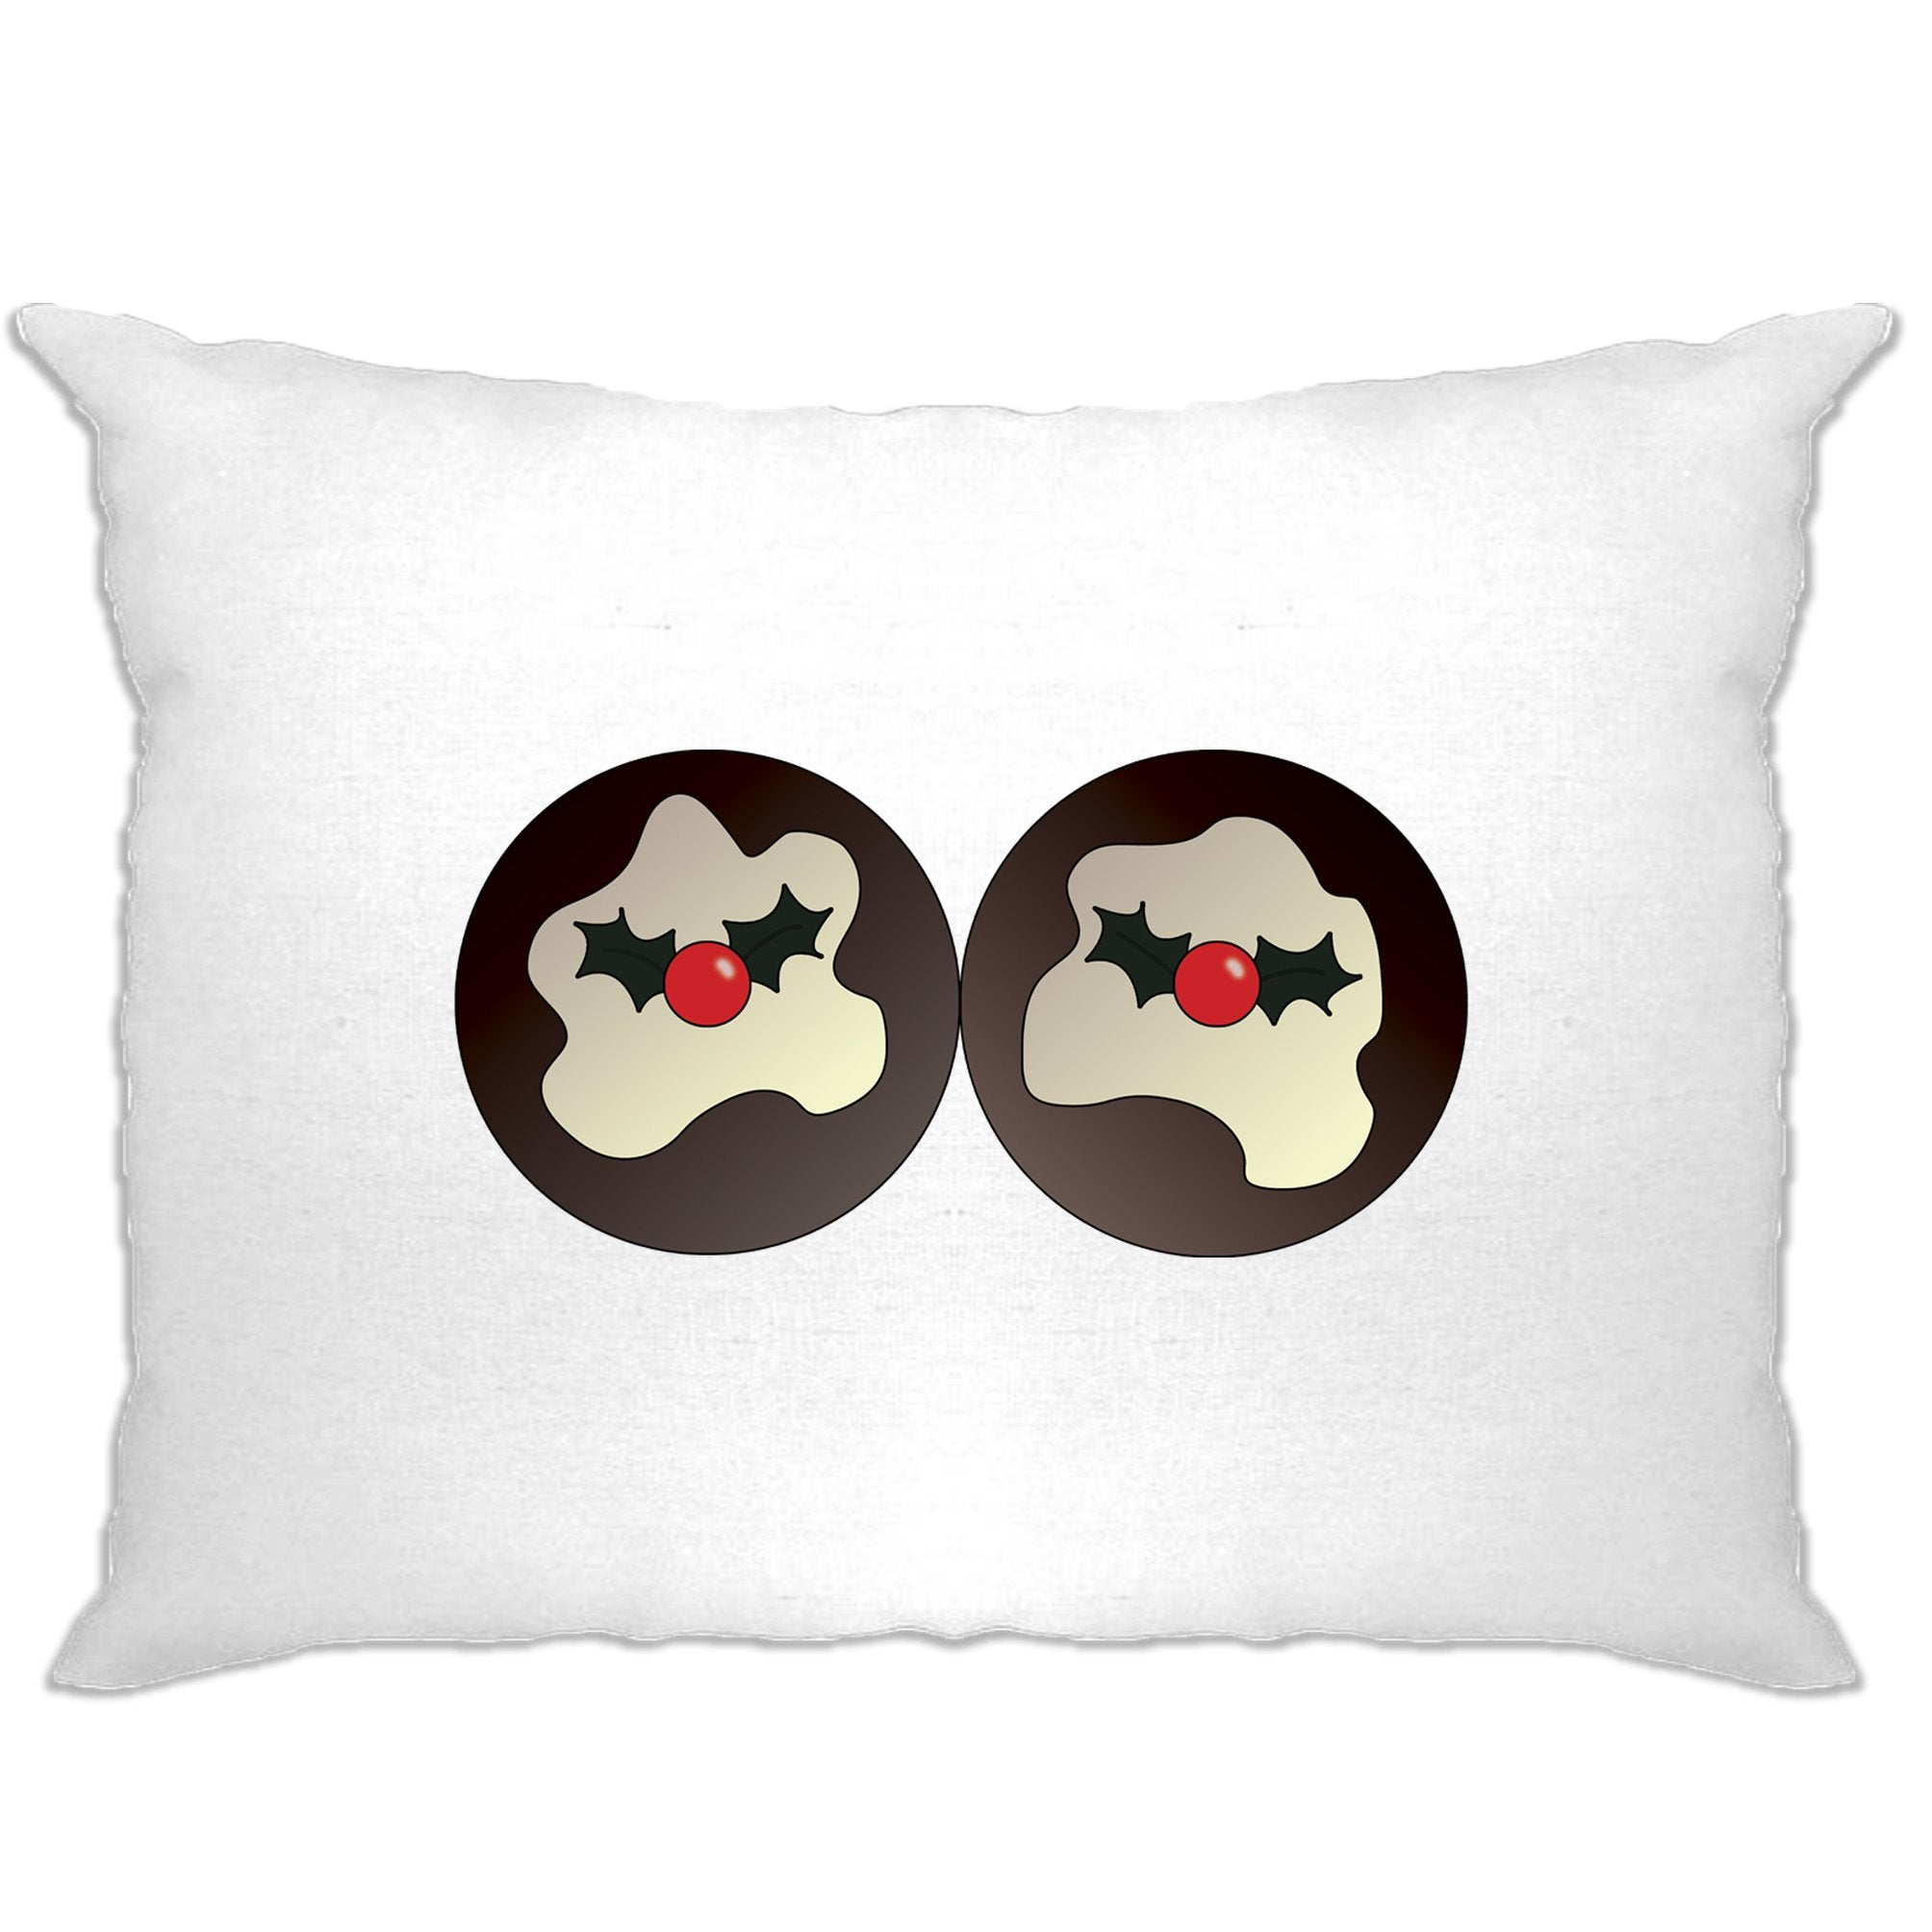 Rude Xmas Pillow Case Christmas Pudding Breasts